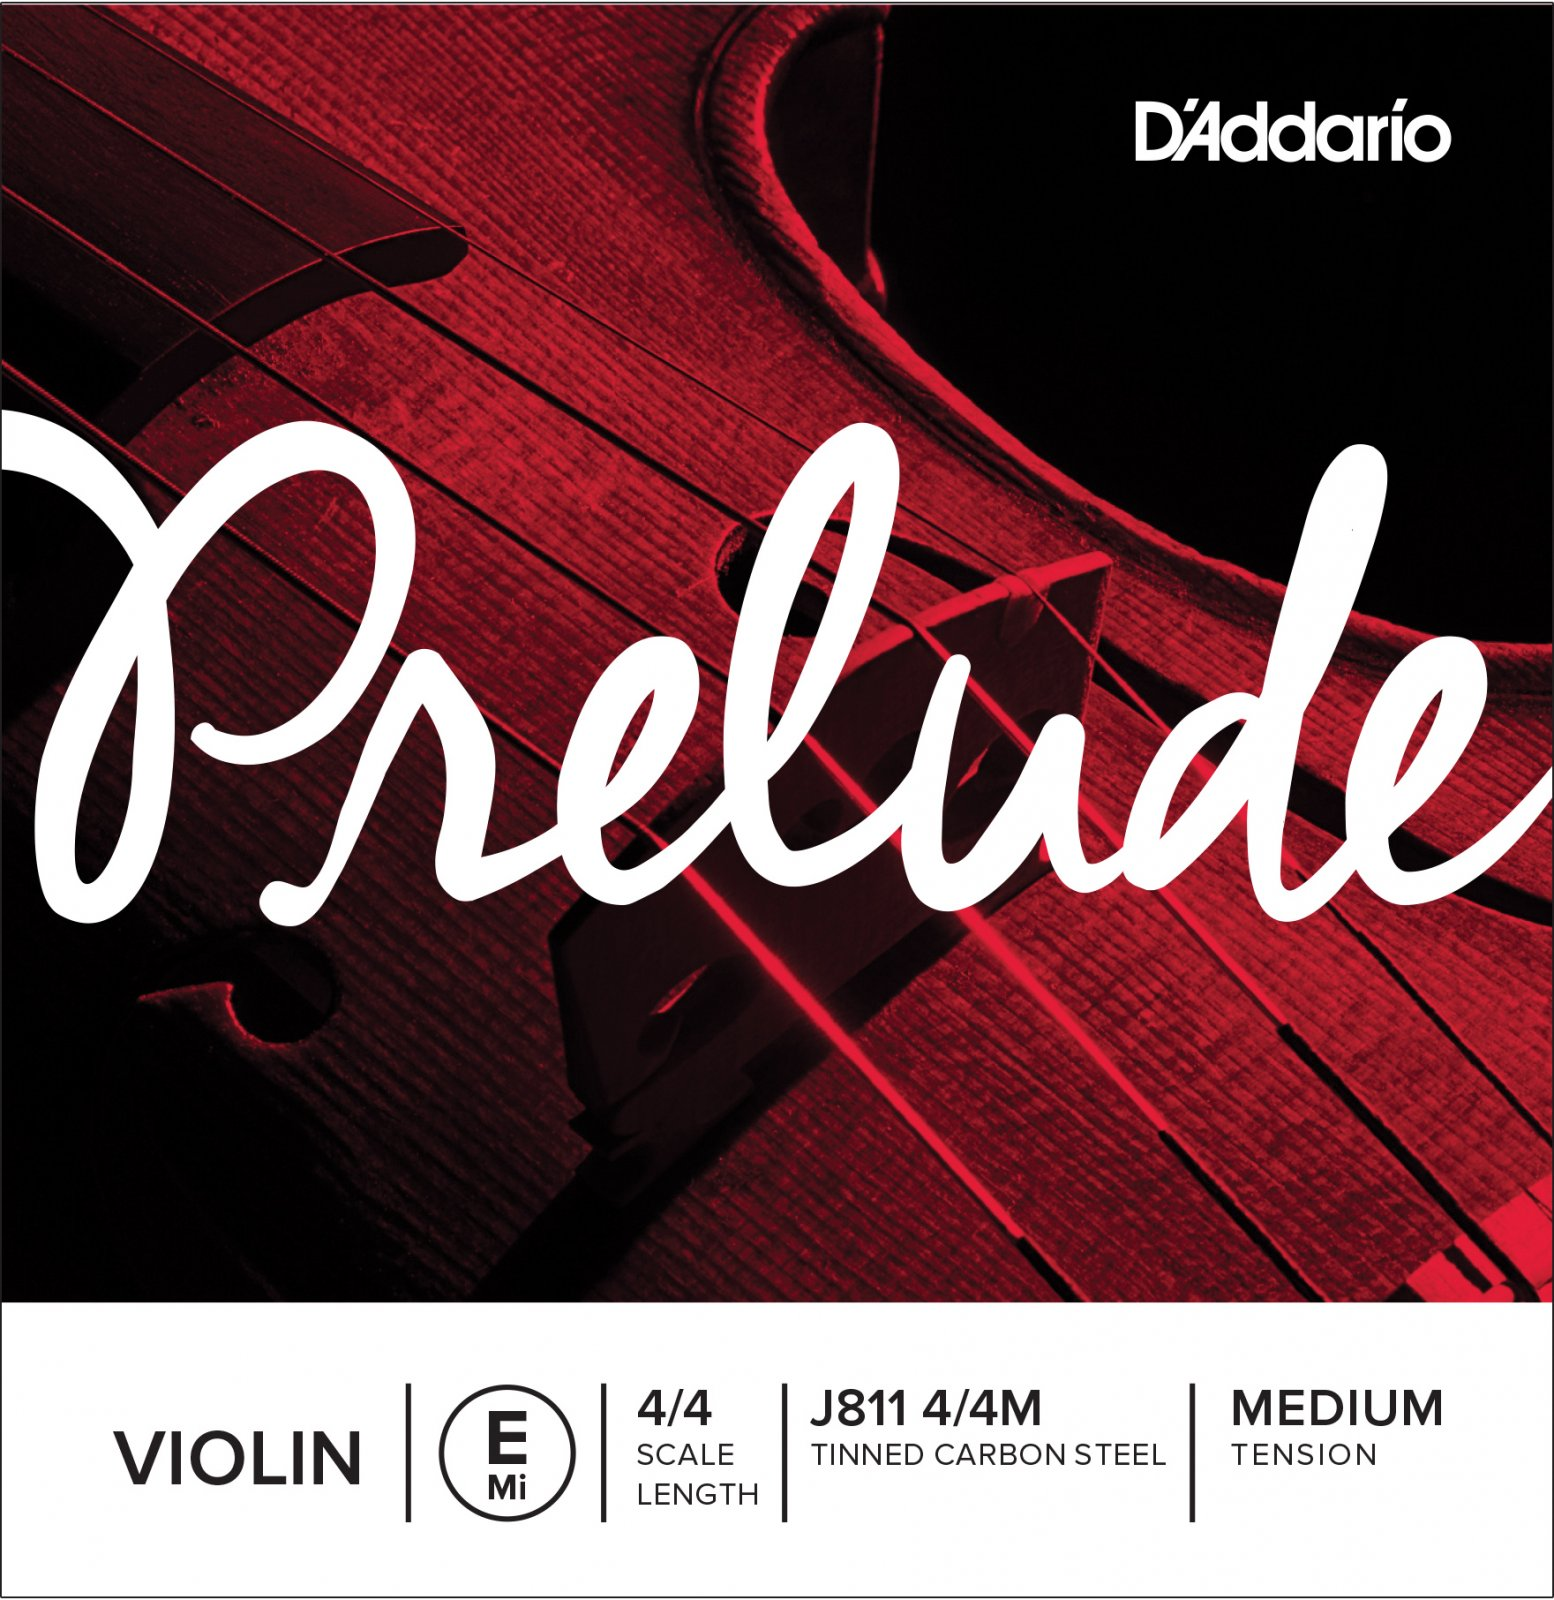 D'Addario J811 Prelude Violin Single E String Medium Tension 1/2 3/4 4/4